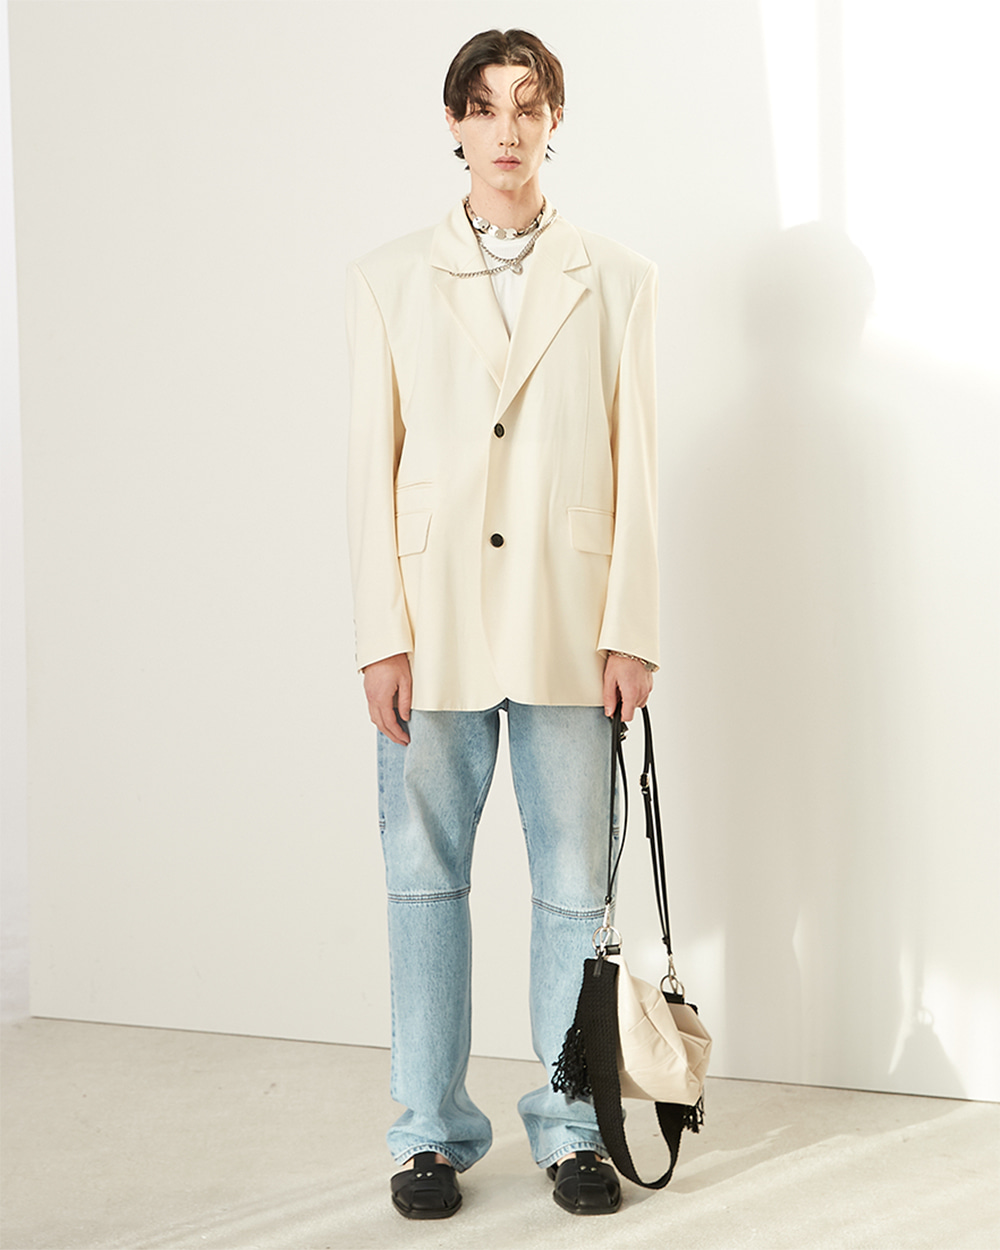 HALEINE알렌느 CREAM half double blazer(NJ034)**3/29배송**